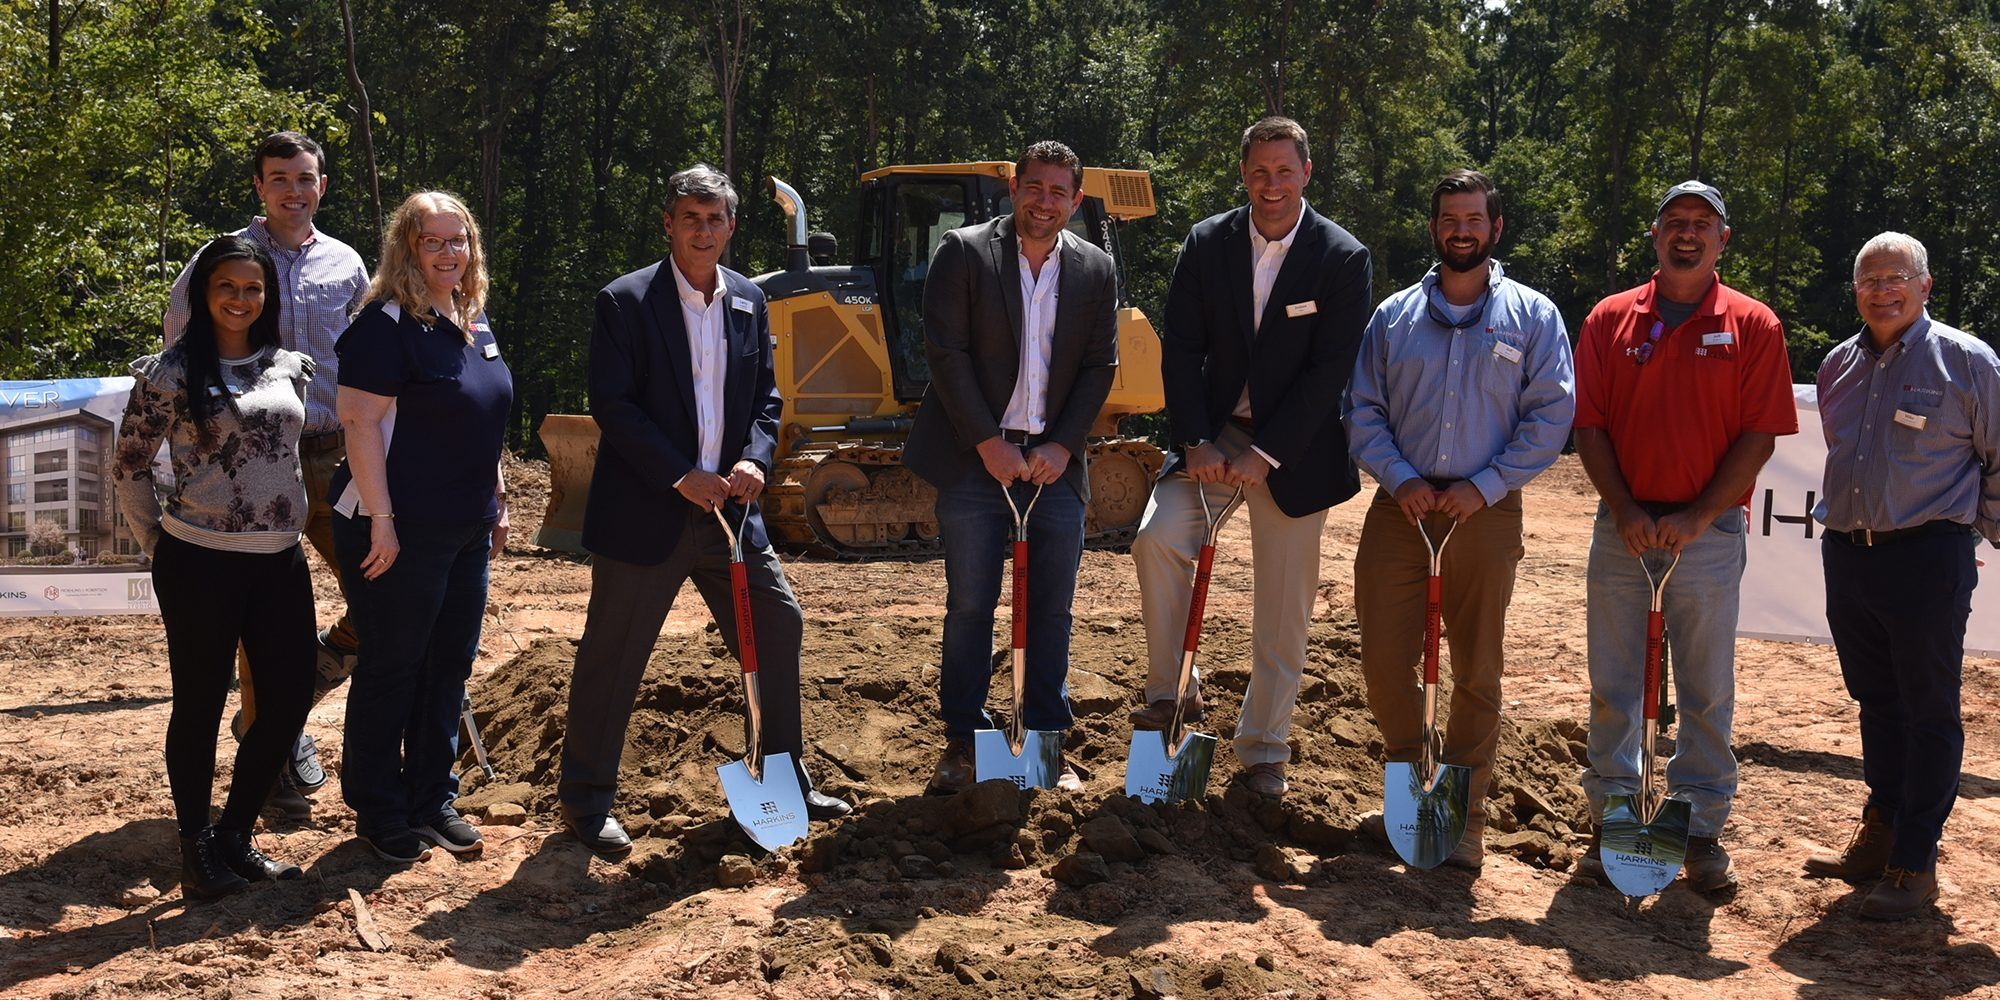 The Oliver Groundbreaking